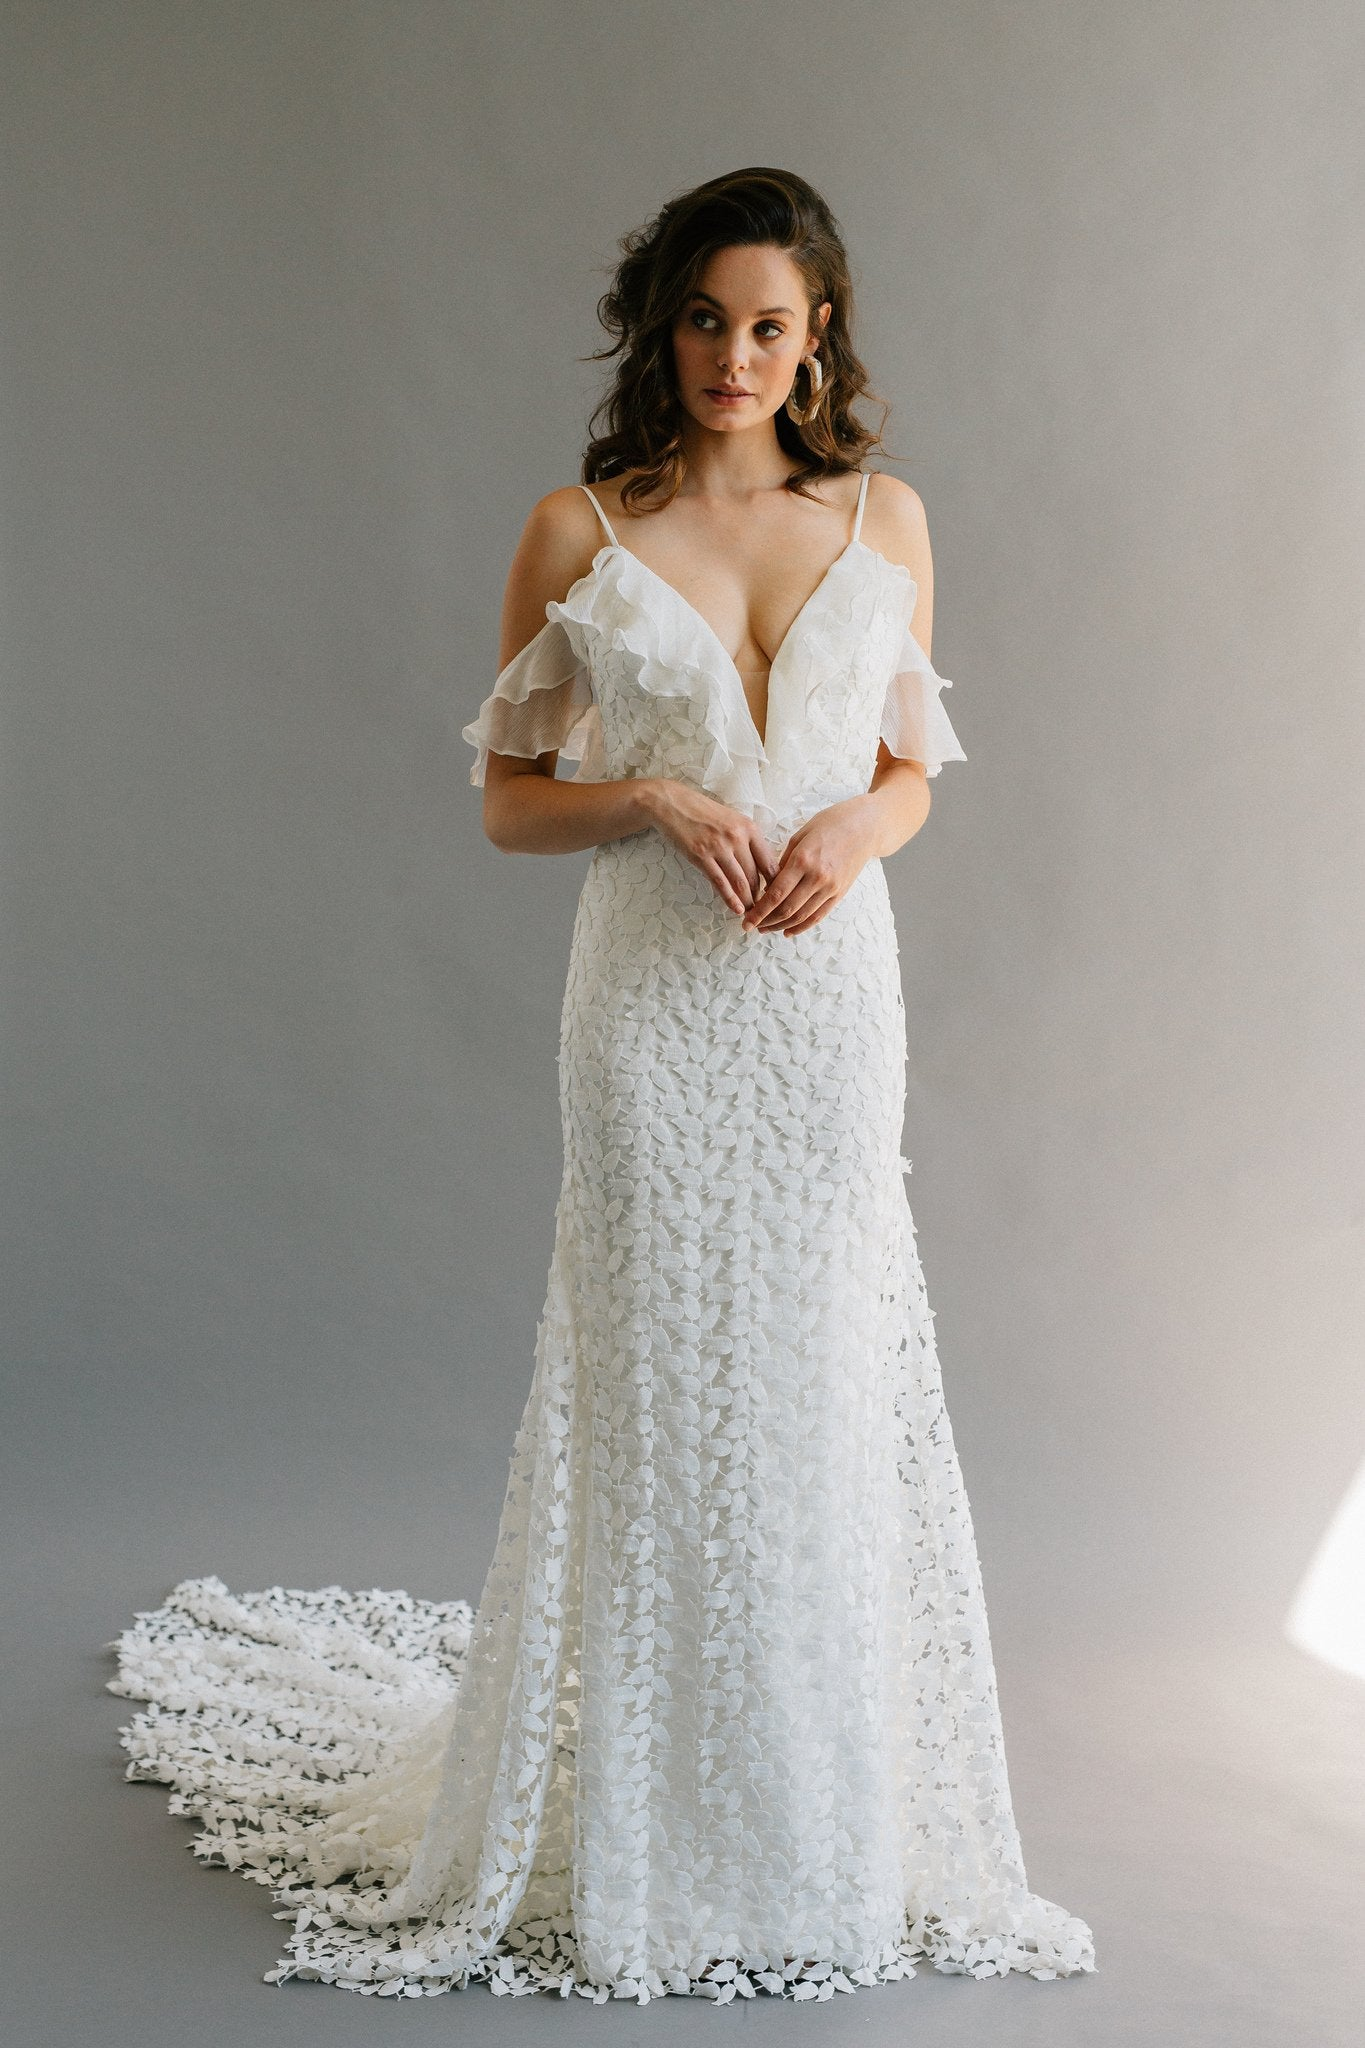 Modern boho wedding dress featuring off the shoulder silk ruffles, a leafy lace, and a long godet train